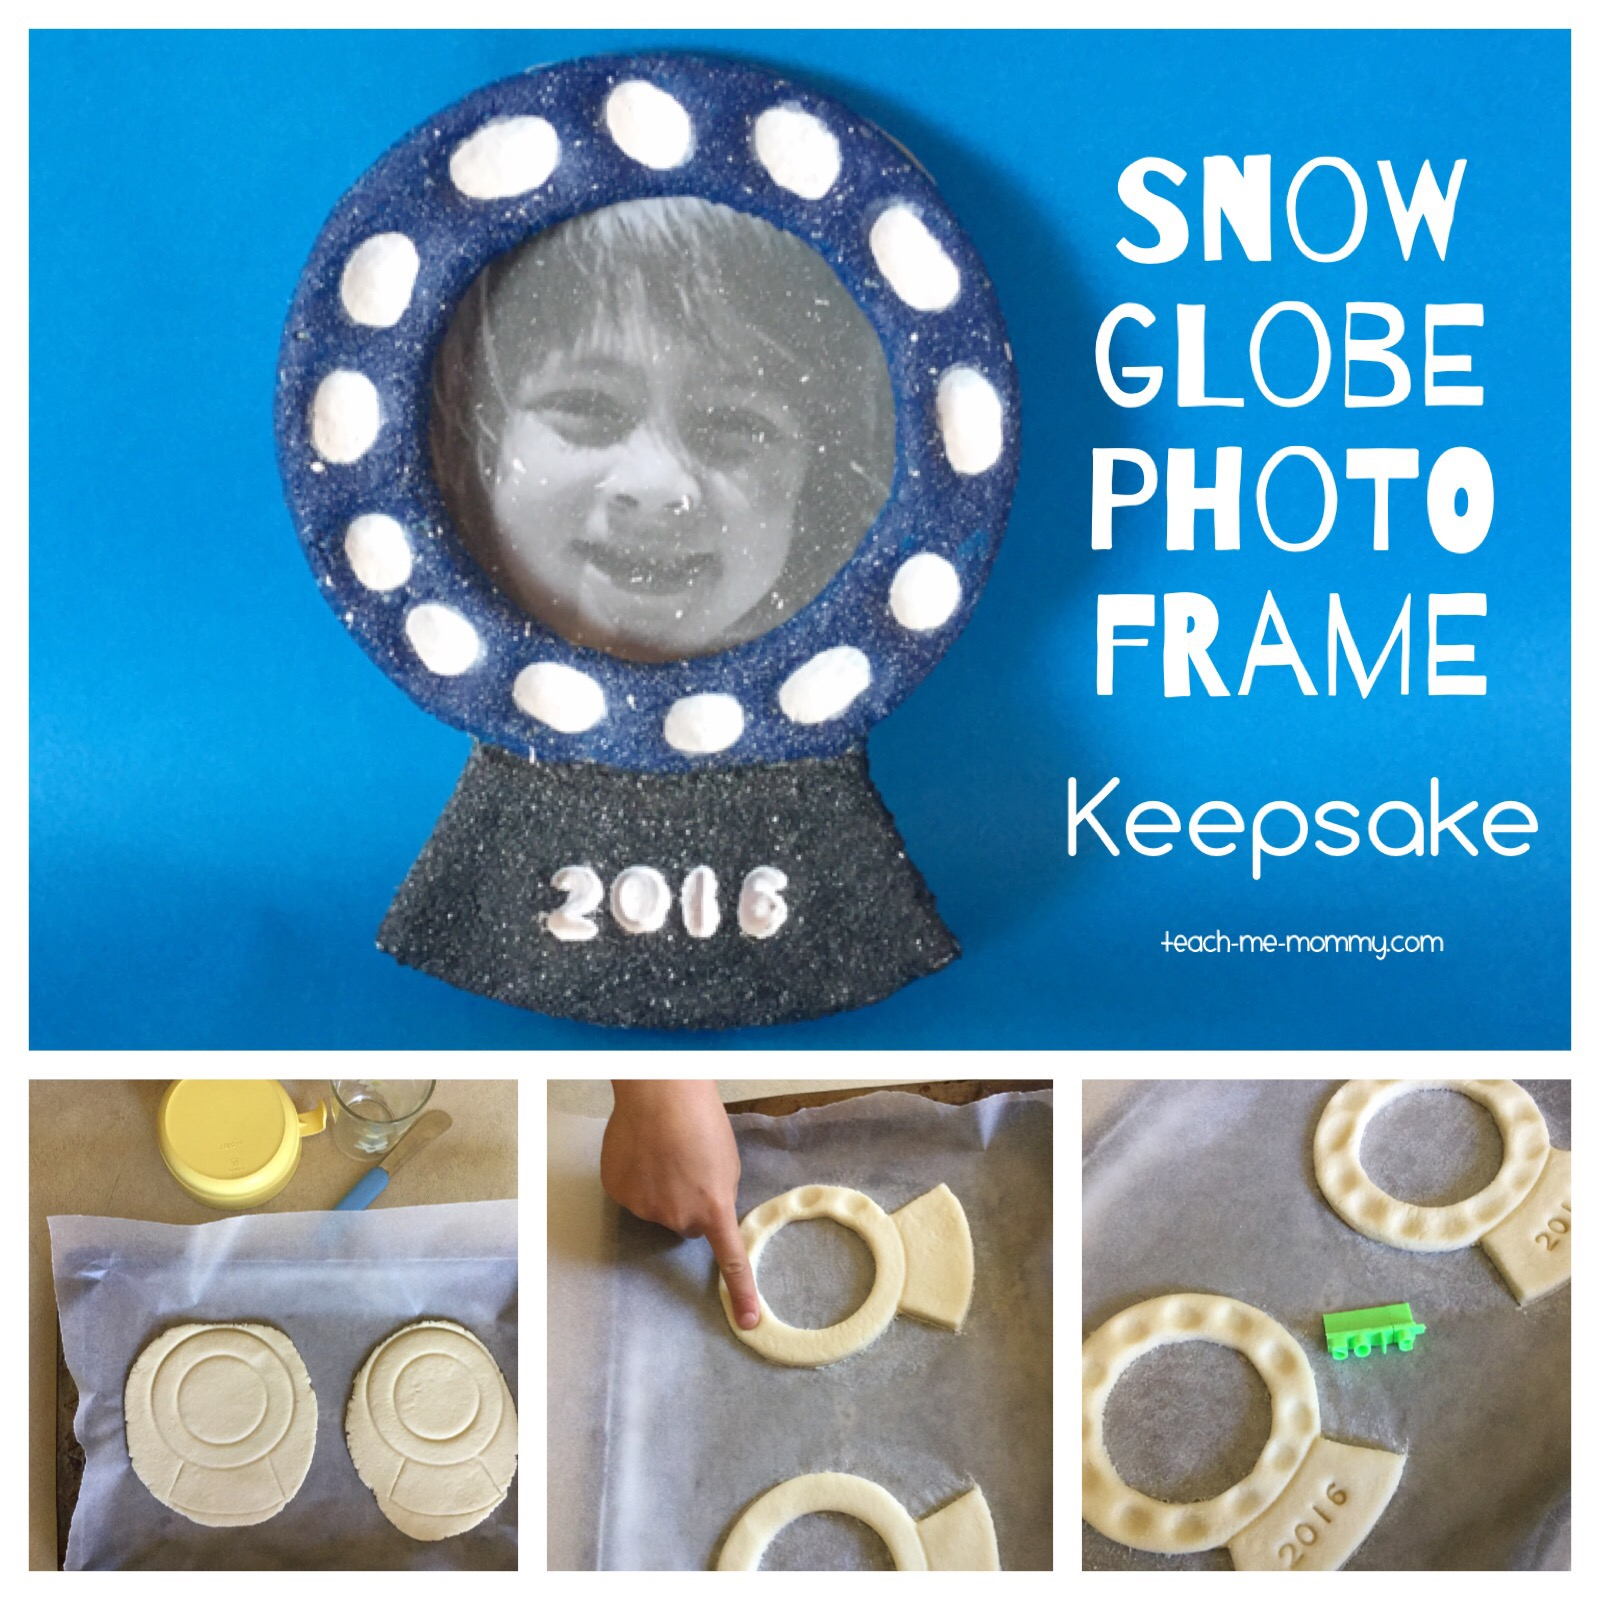 snow globe photo keepsake